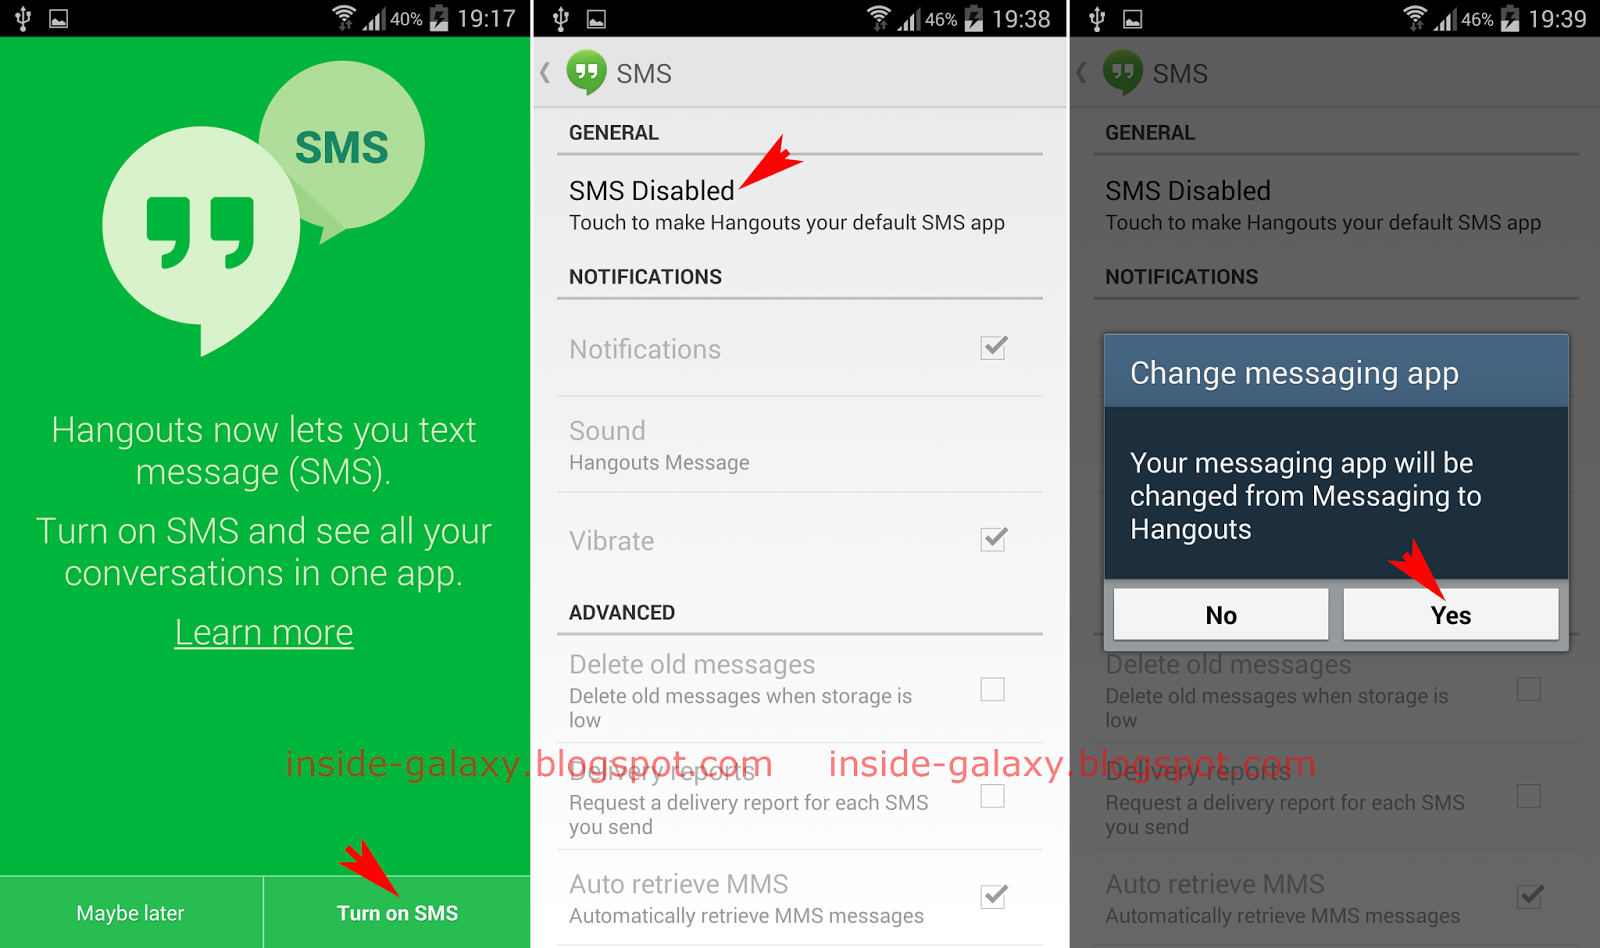 Samsung Galaxy S4: How to Enable SMS Messages in Hangouts App in